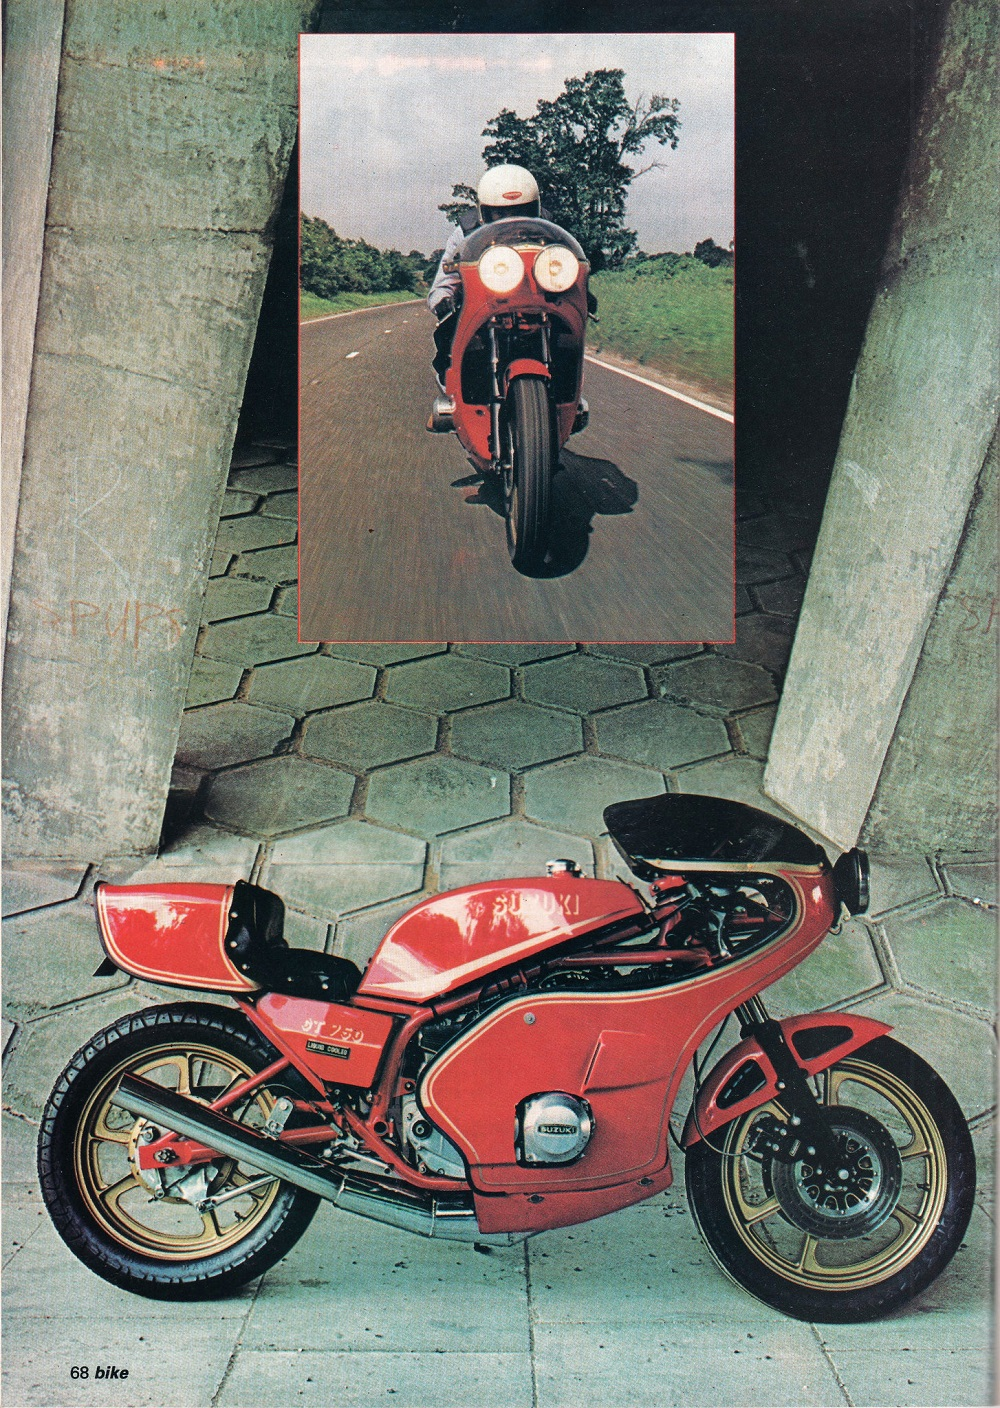 Suzuki GT750 1983 road test 1.jpg